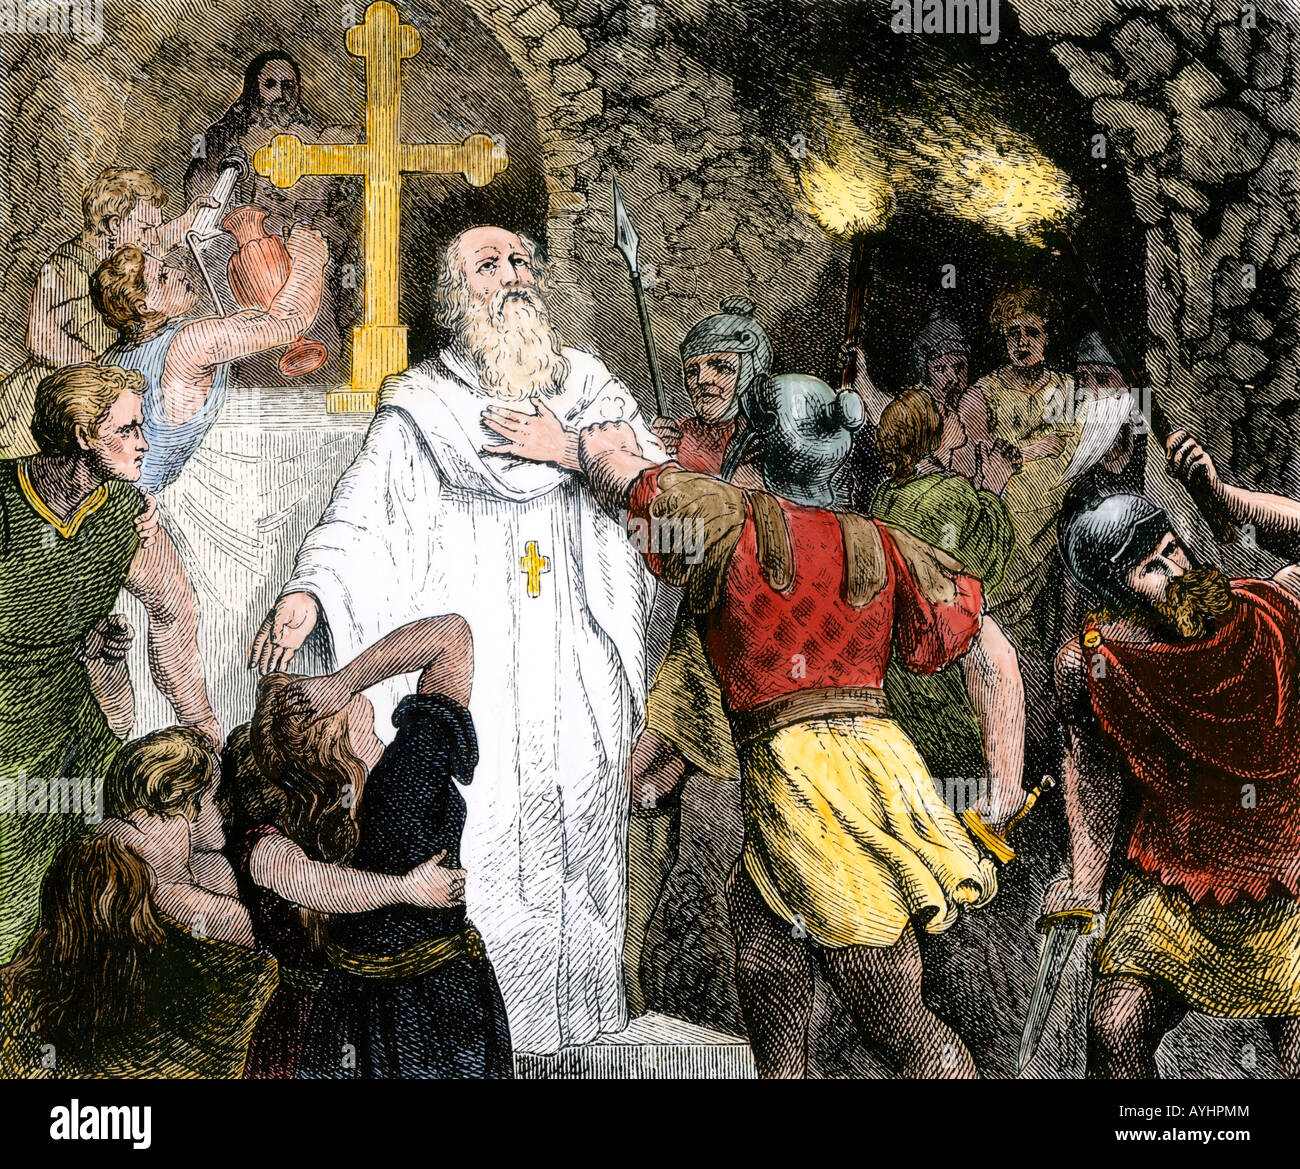 http://c8.alamy.com/comp/AYHPMM/christians-in-the-catacombs-arrested-by-roman-soldiers-AYHPMM.jpg